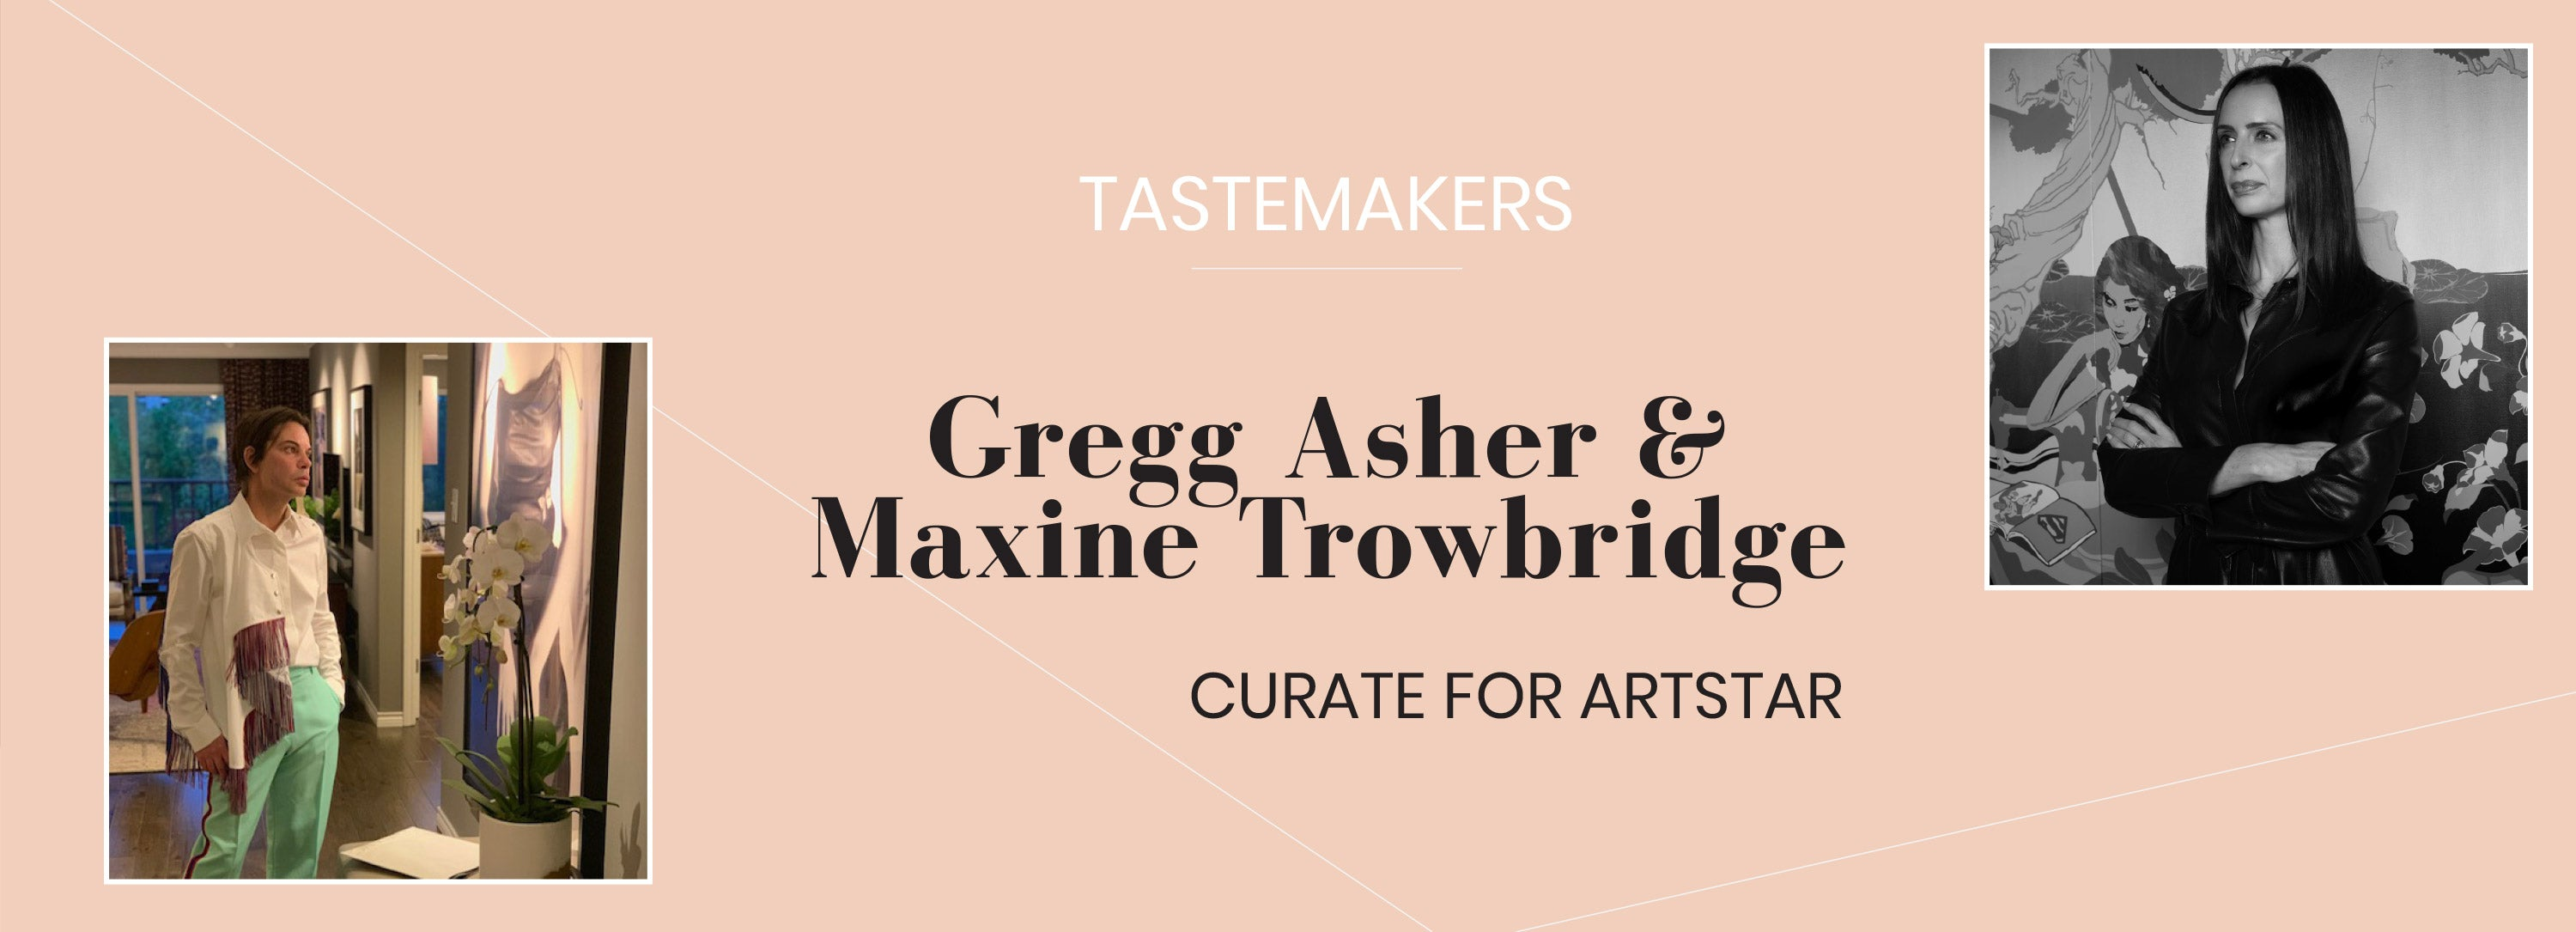 Gregg Asher &  Maxine Trowbridge Curate for ArtStar